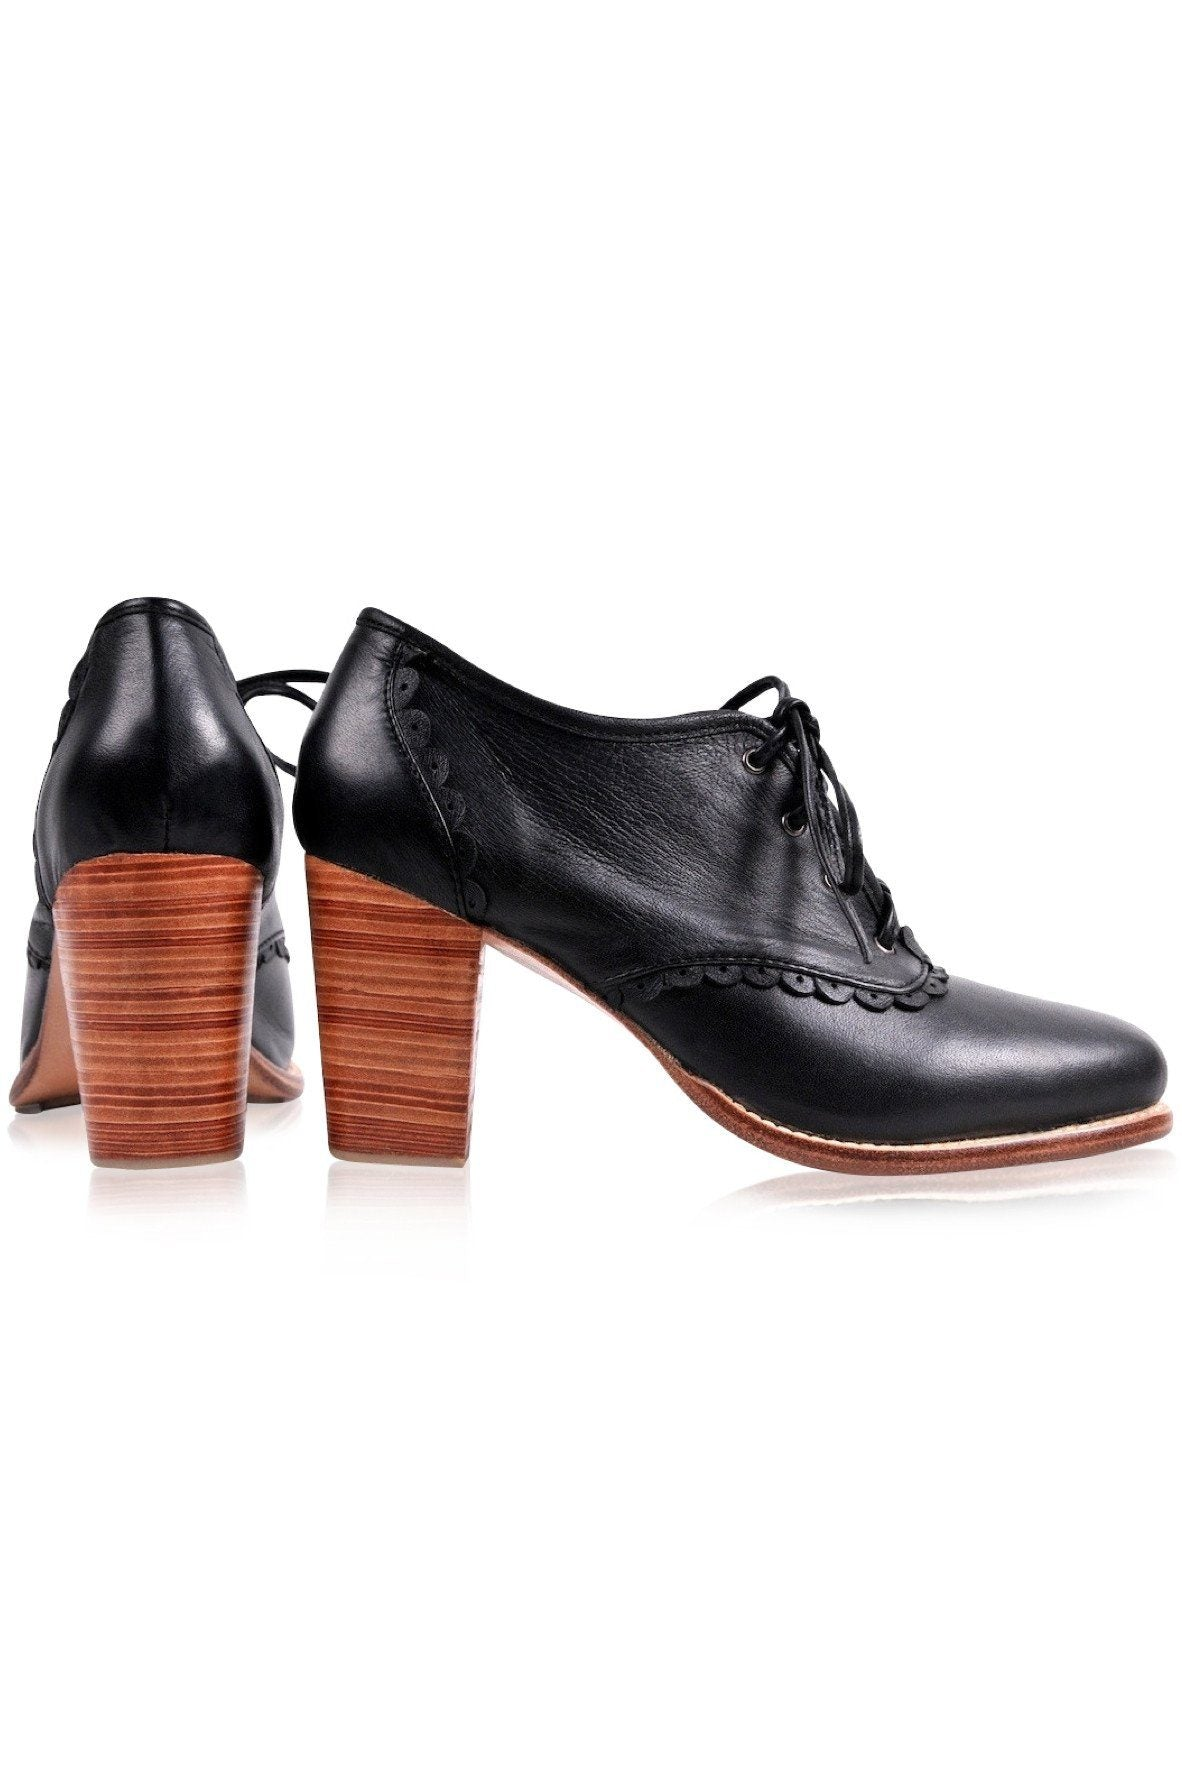 6515faff43b8 Home Leather Shoes Vintage-style oxford in black color